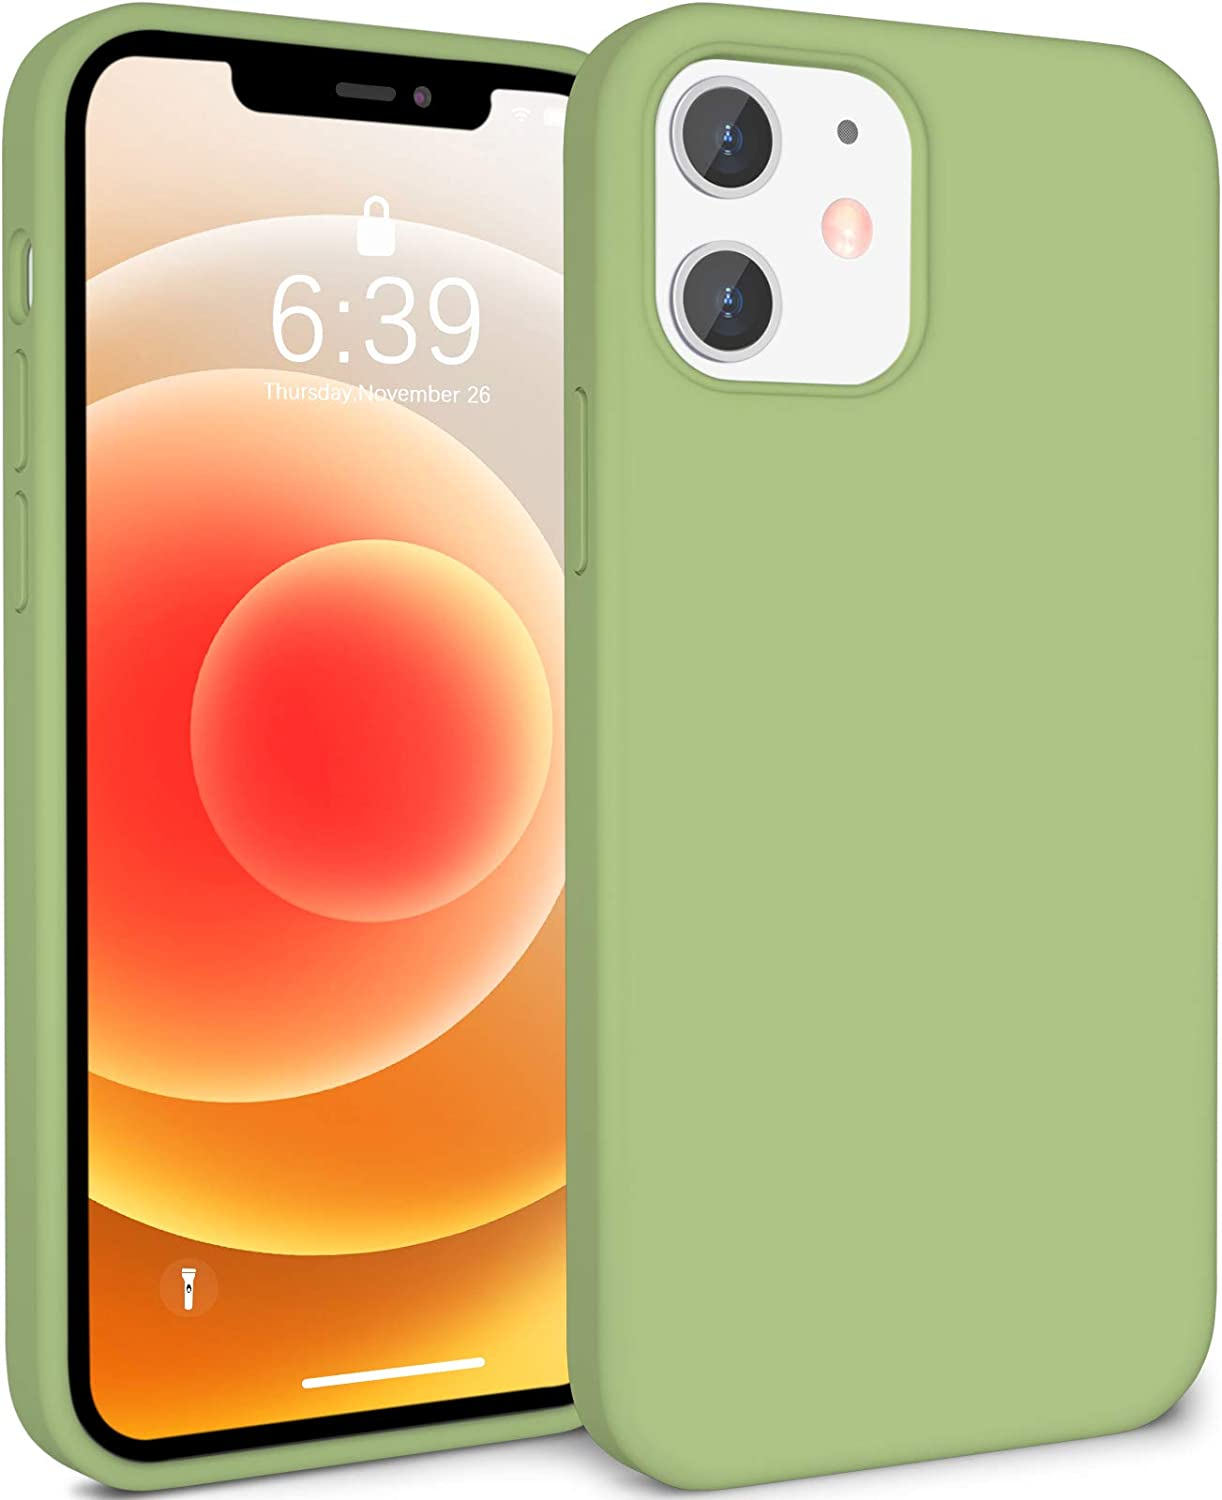 ATUAT Compatible with iPhone 12 Case and iPhone 12 Pro Case 6.1 inch, Silky Soft Liquid Silicone Case, [Snug Fit] [Screen & Lens Protection] [Shock-Absorbing] - Matcha